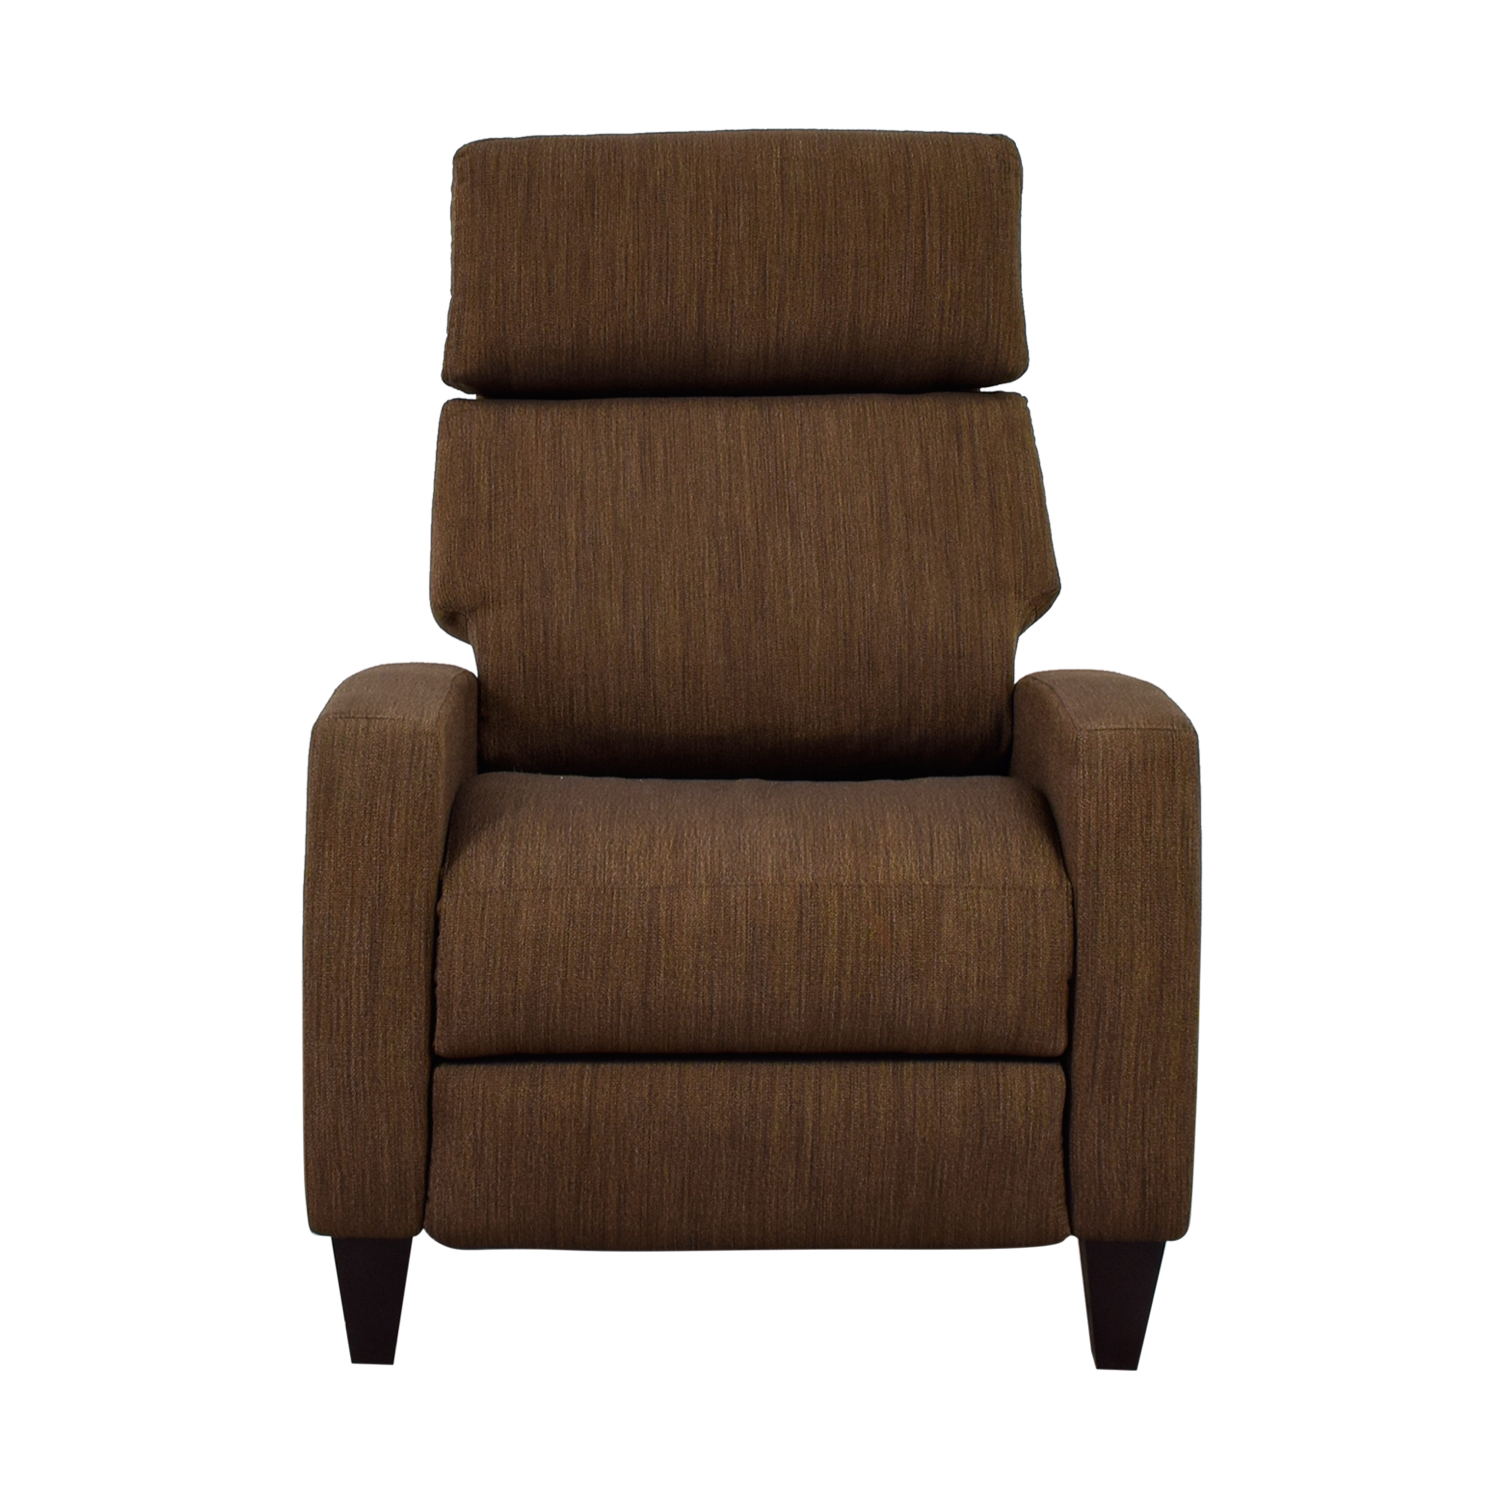 American Leather American Leather Brown Tweed Electric Recliner Chair Sofas